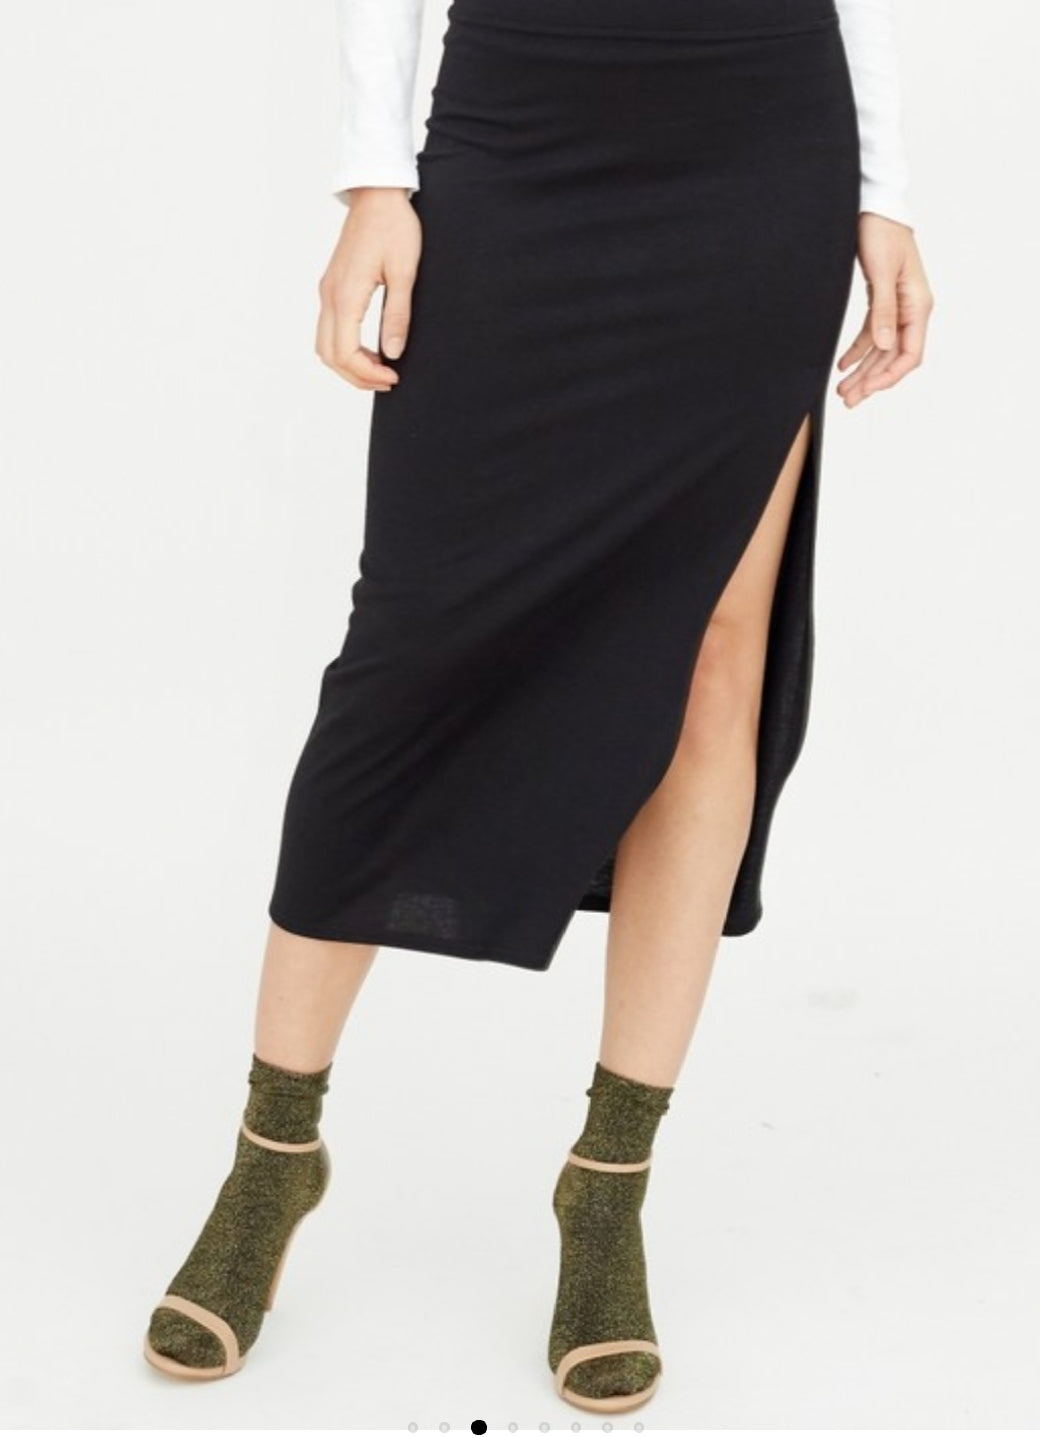 Miss Petty's High Slit Midi Skirt